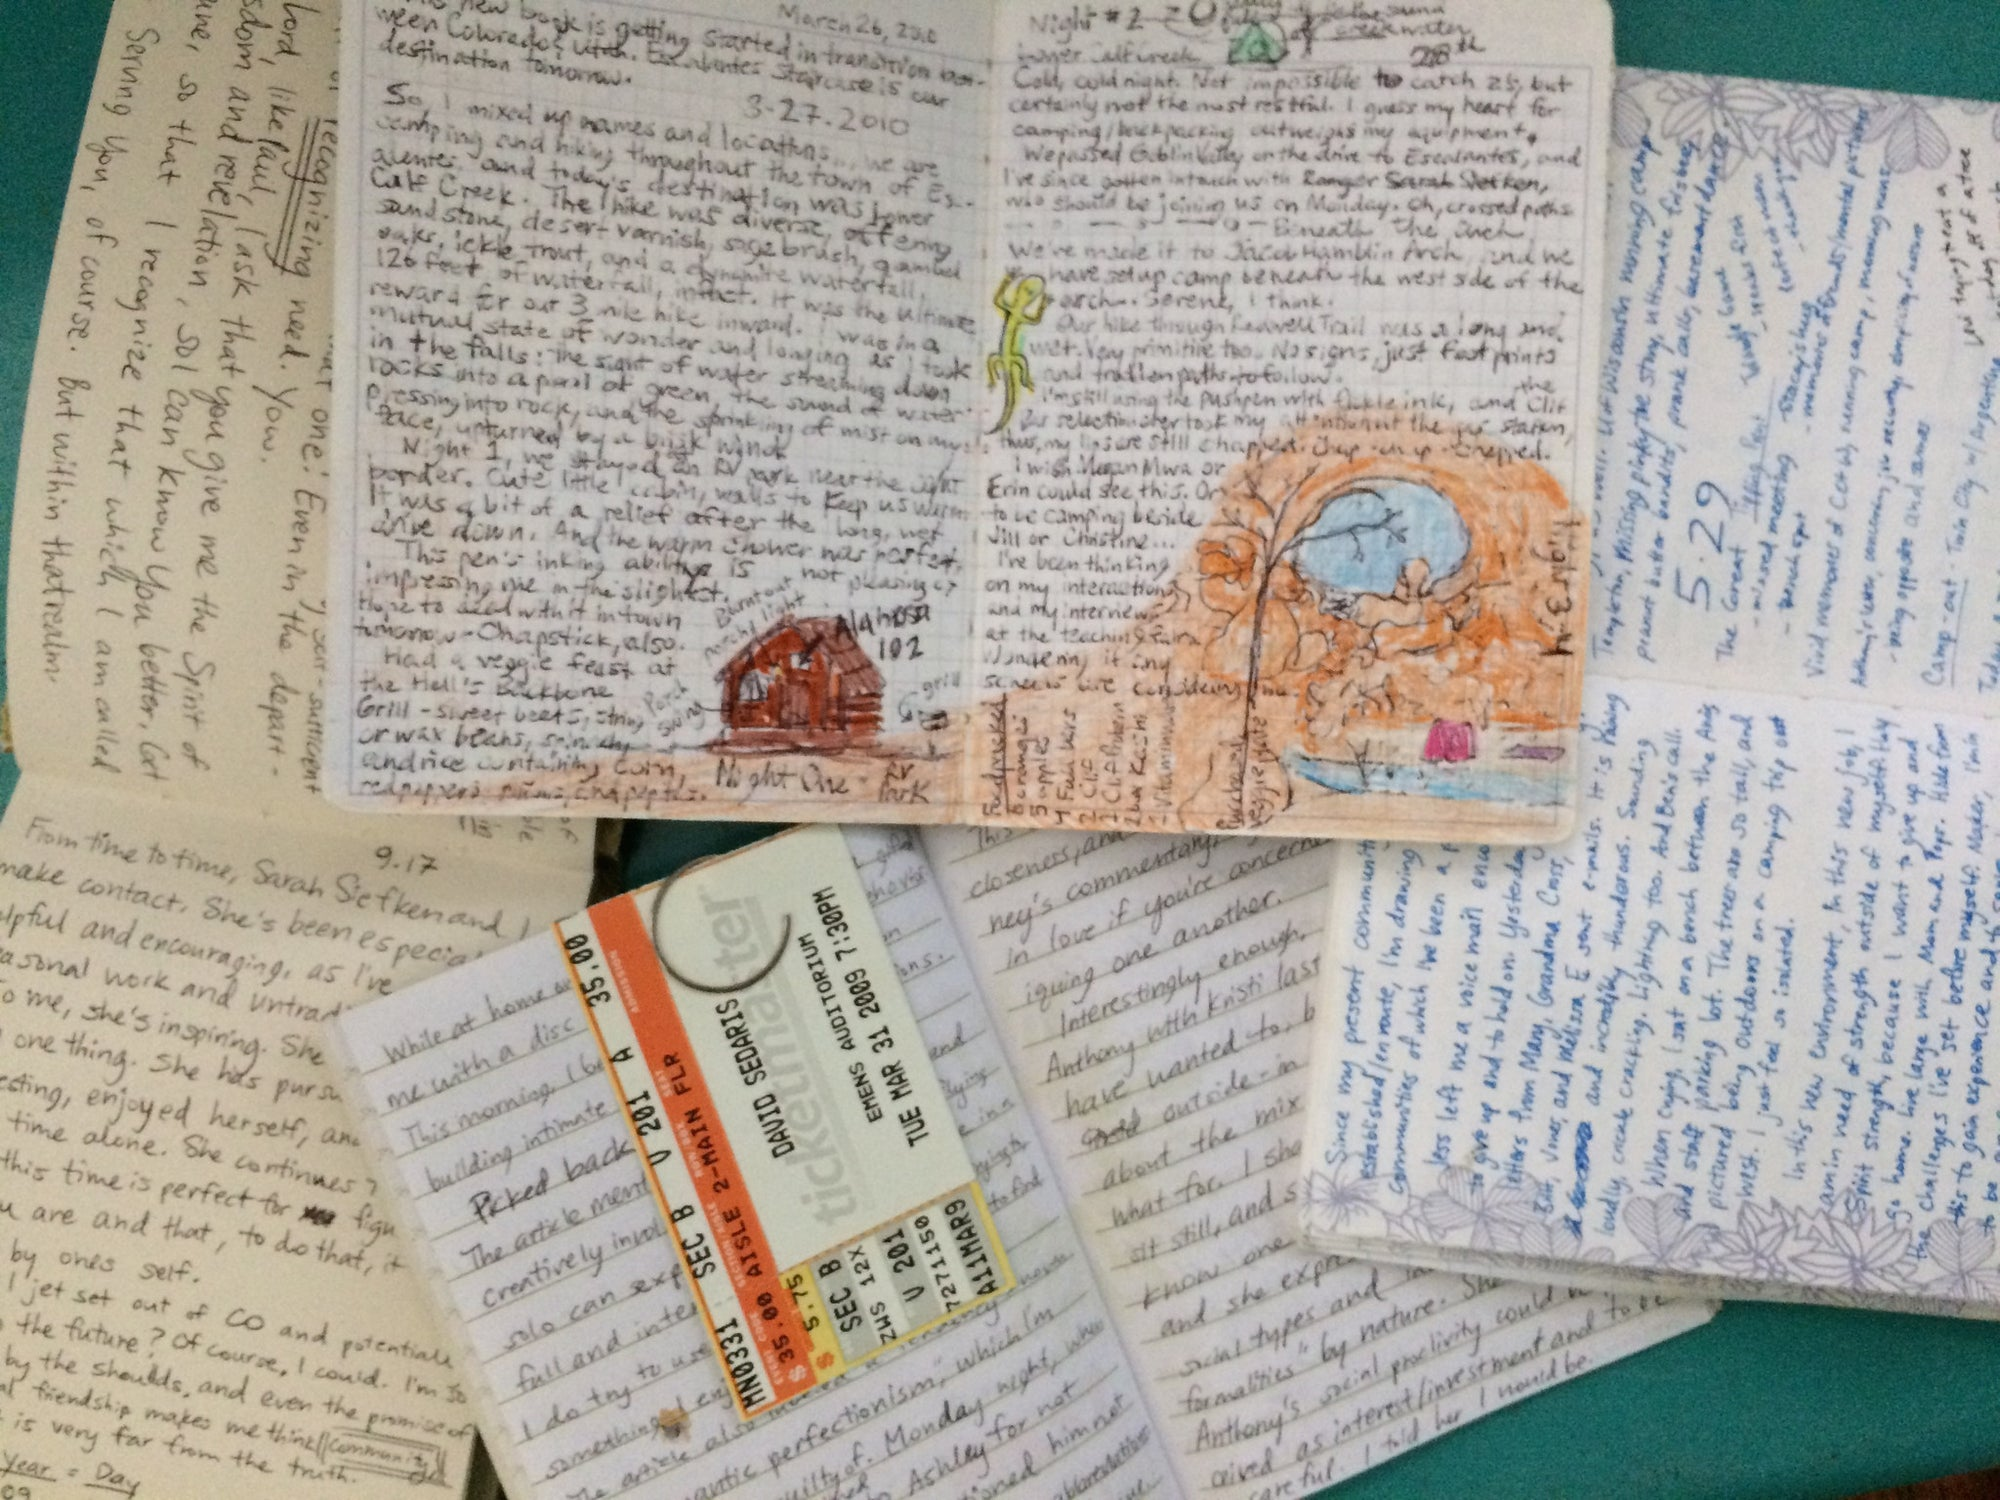 Adventures in Journaling with our Guest Blogger: Laura Knepler